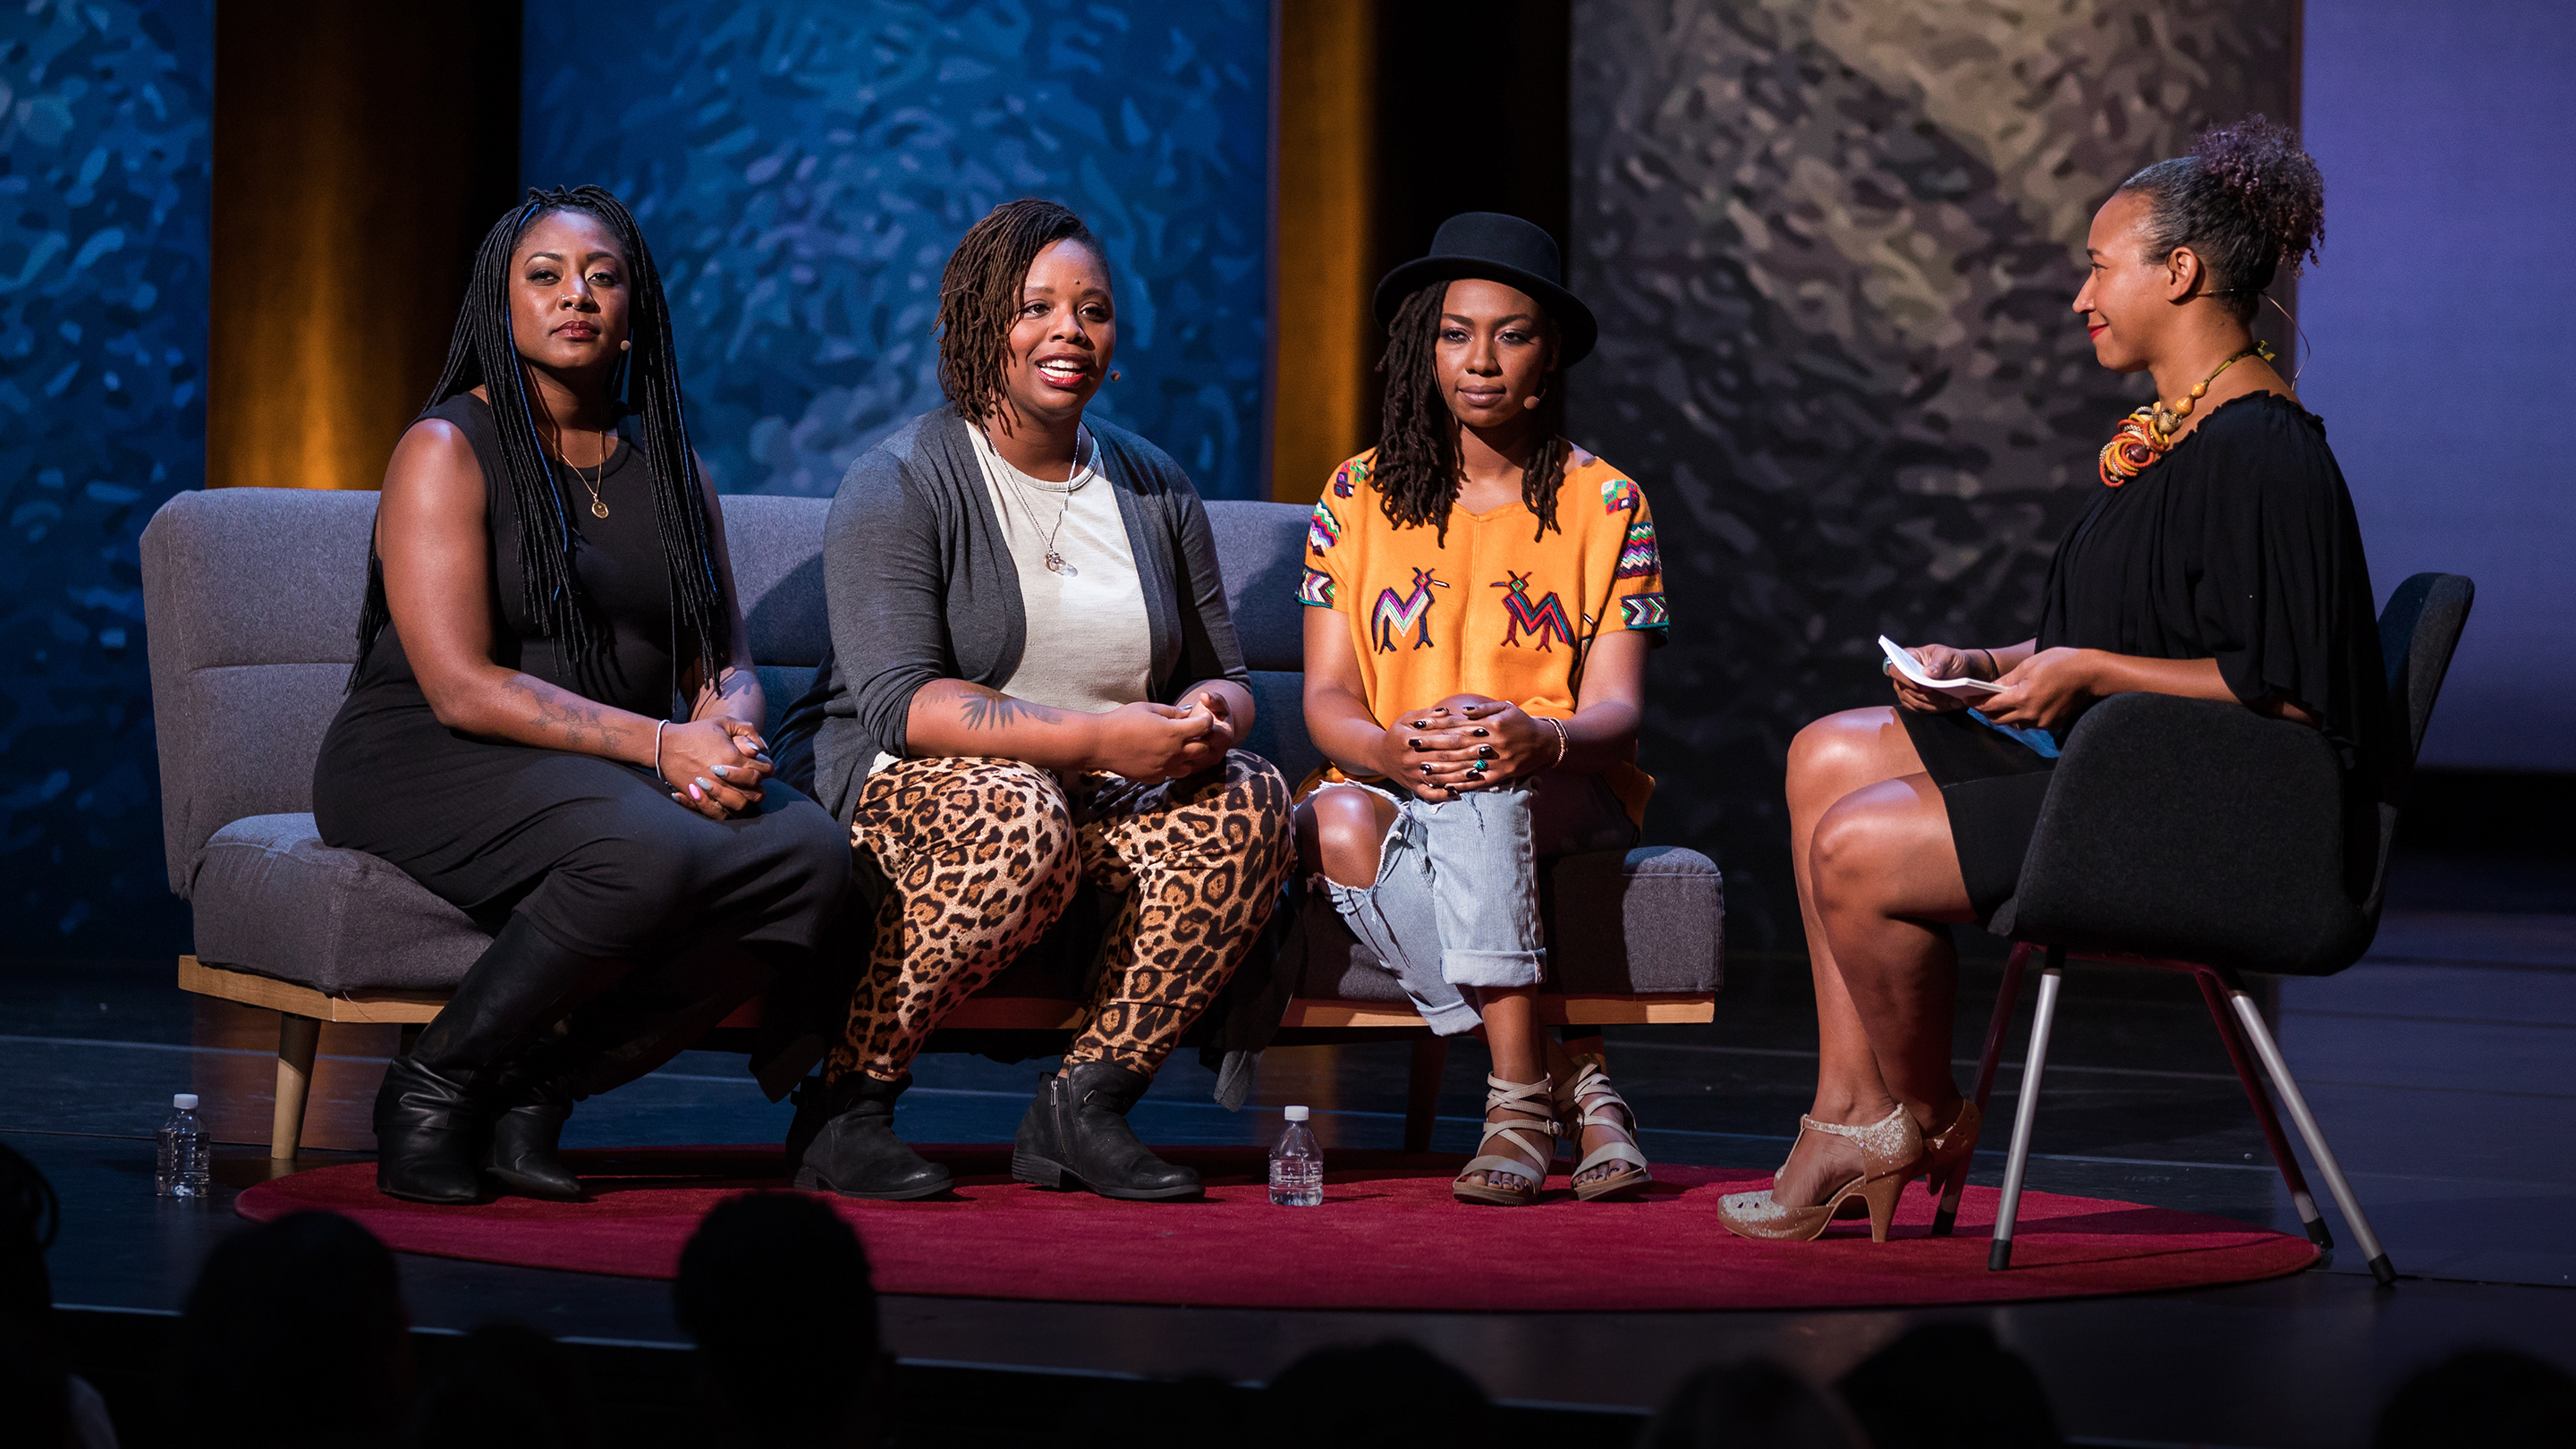 Alicia Garza, Patrisse Cullors, Opal Tometi: An interview with the founders of Black Lives Matter thumbnail